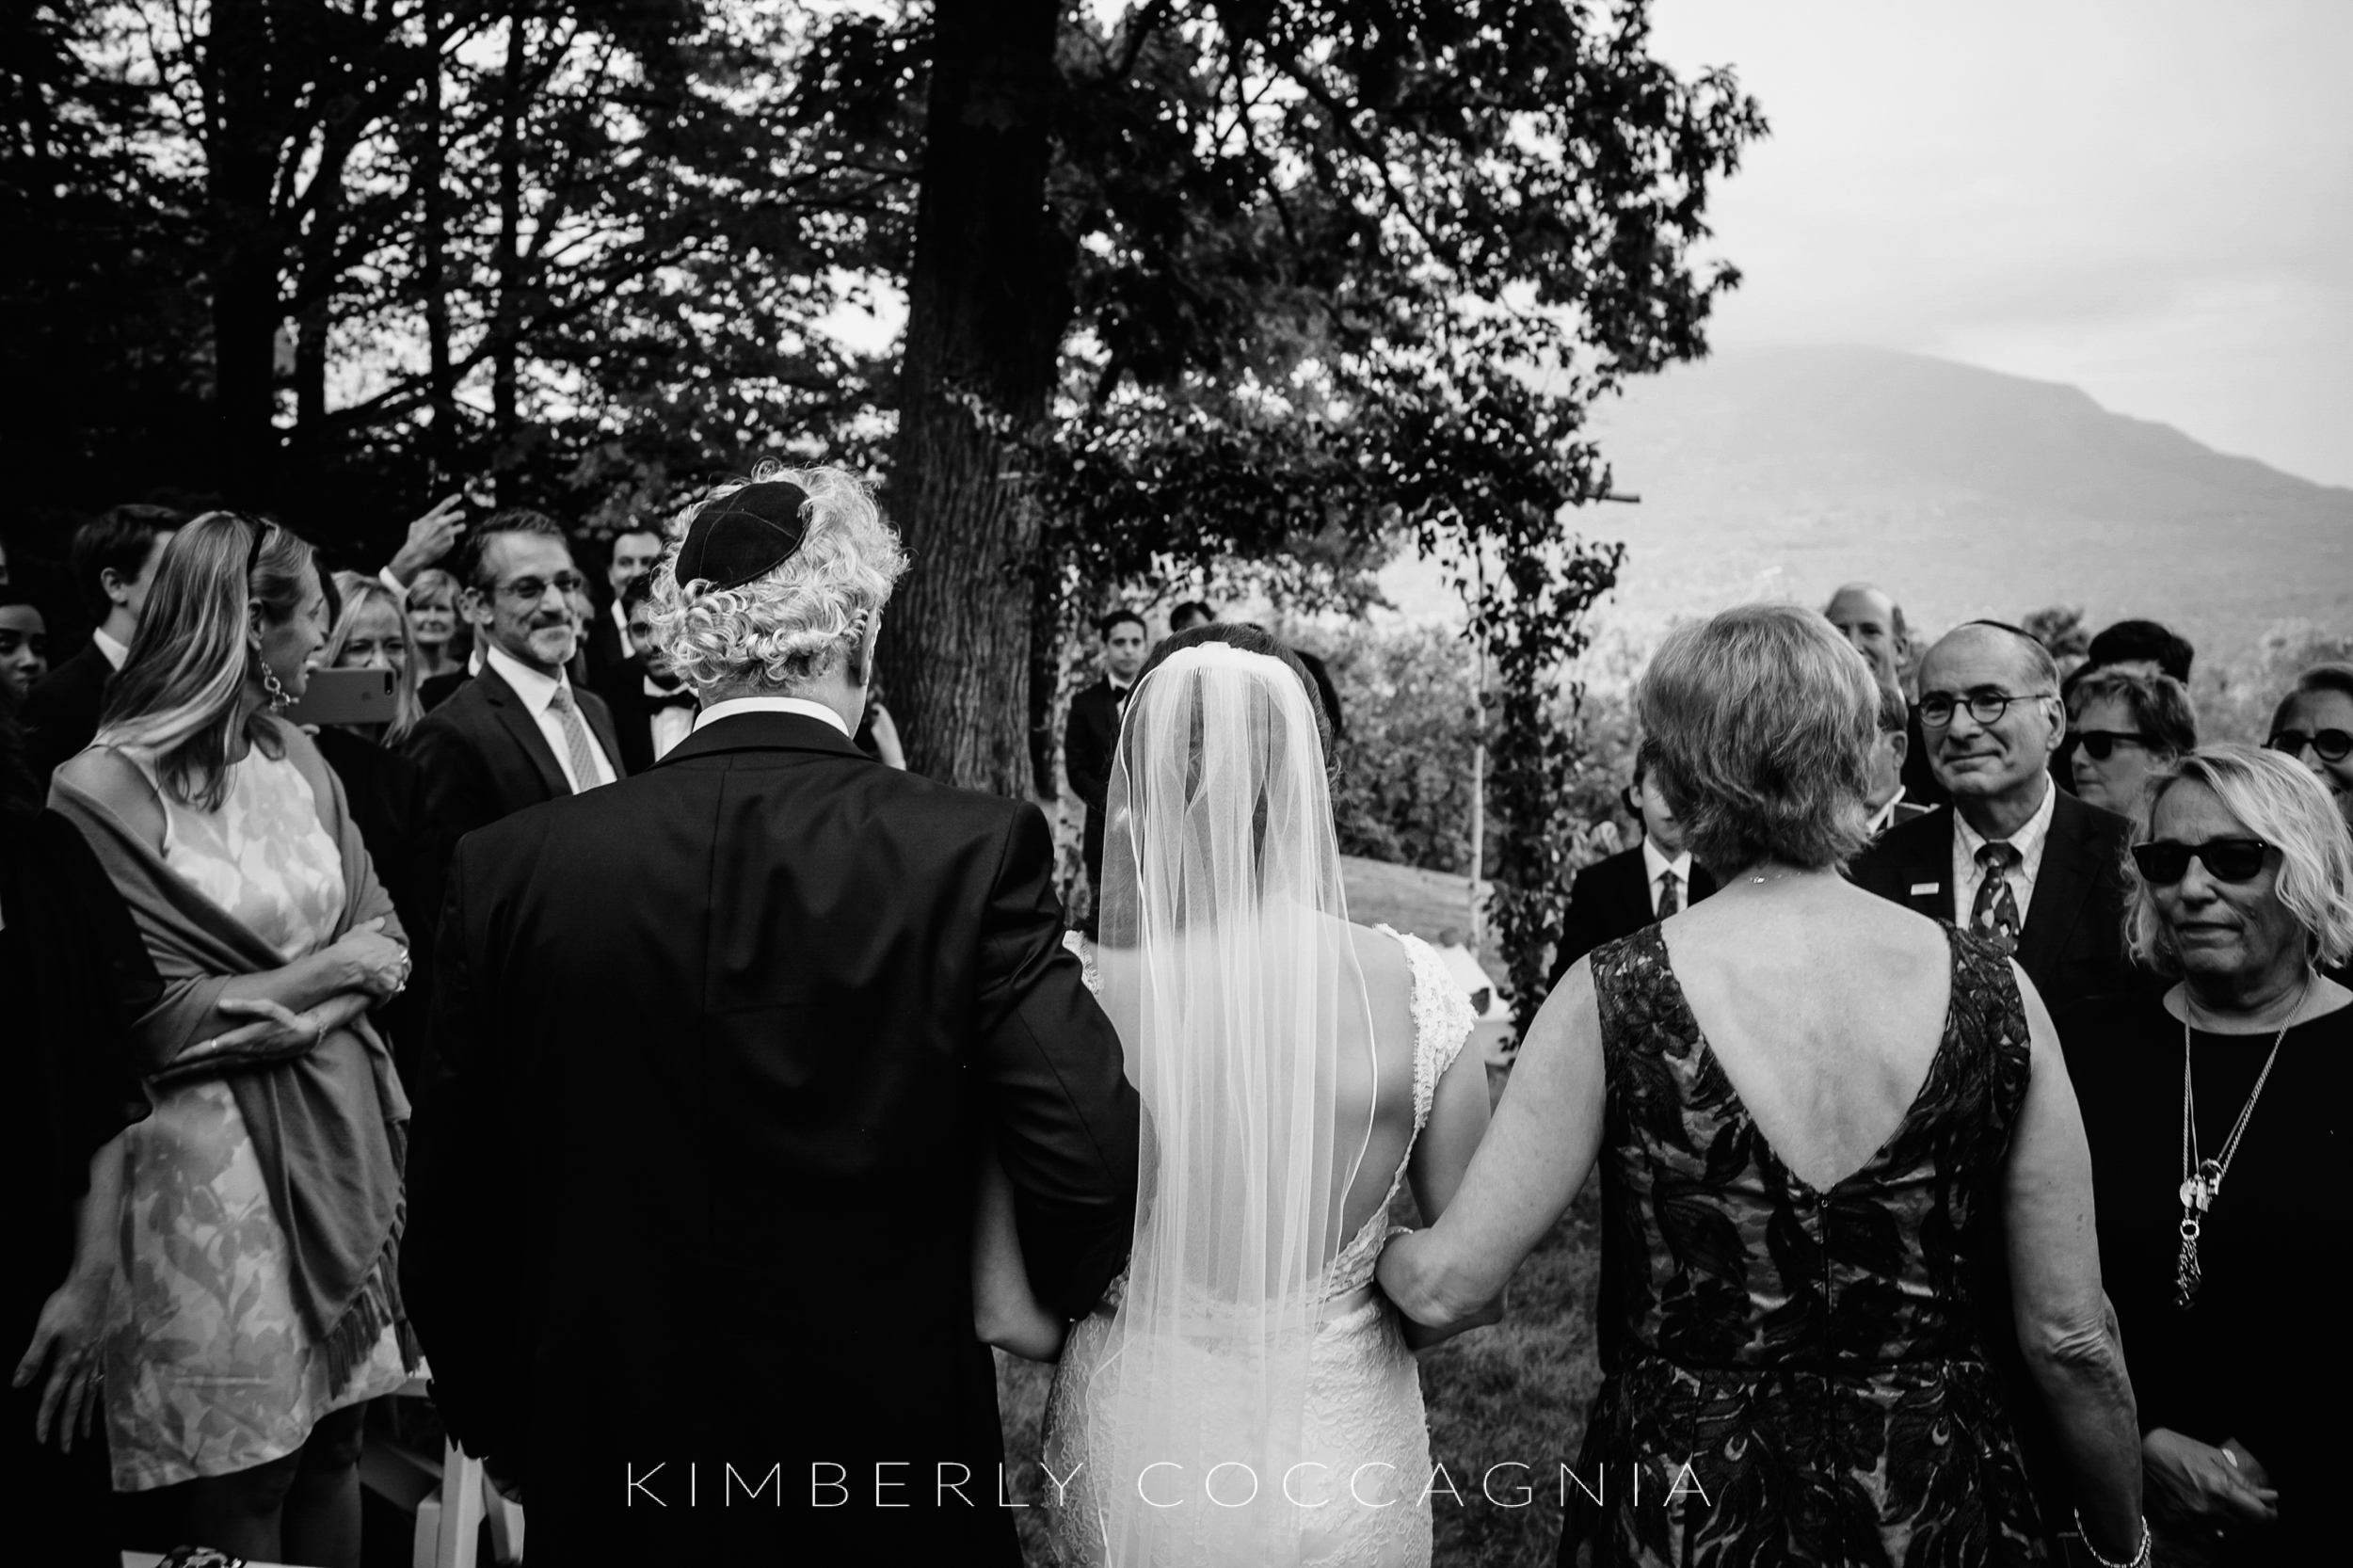 Kimberly+Coccagnia+Hudson+Valley+Wedding+Photographer-45.JPG